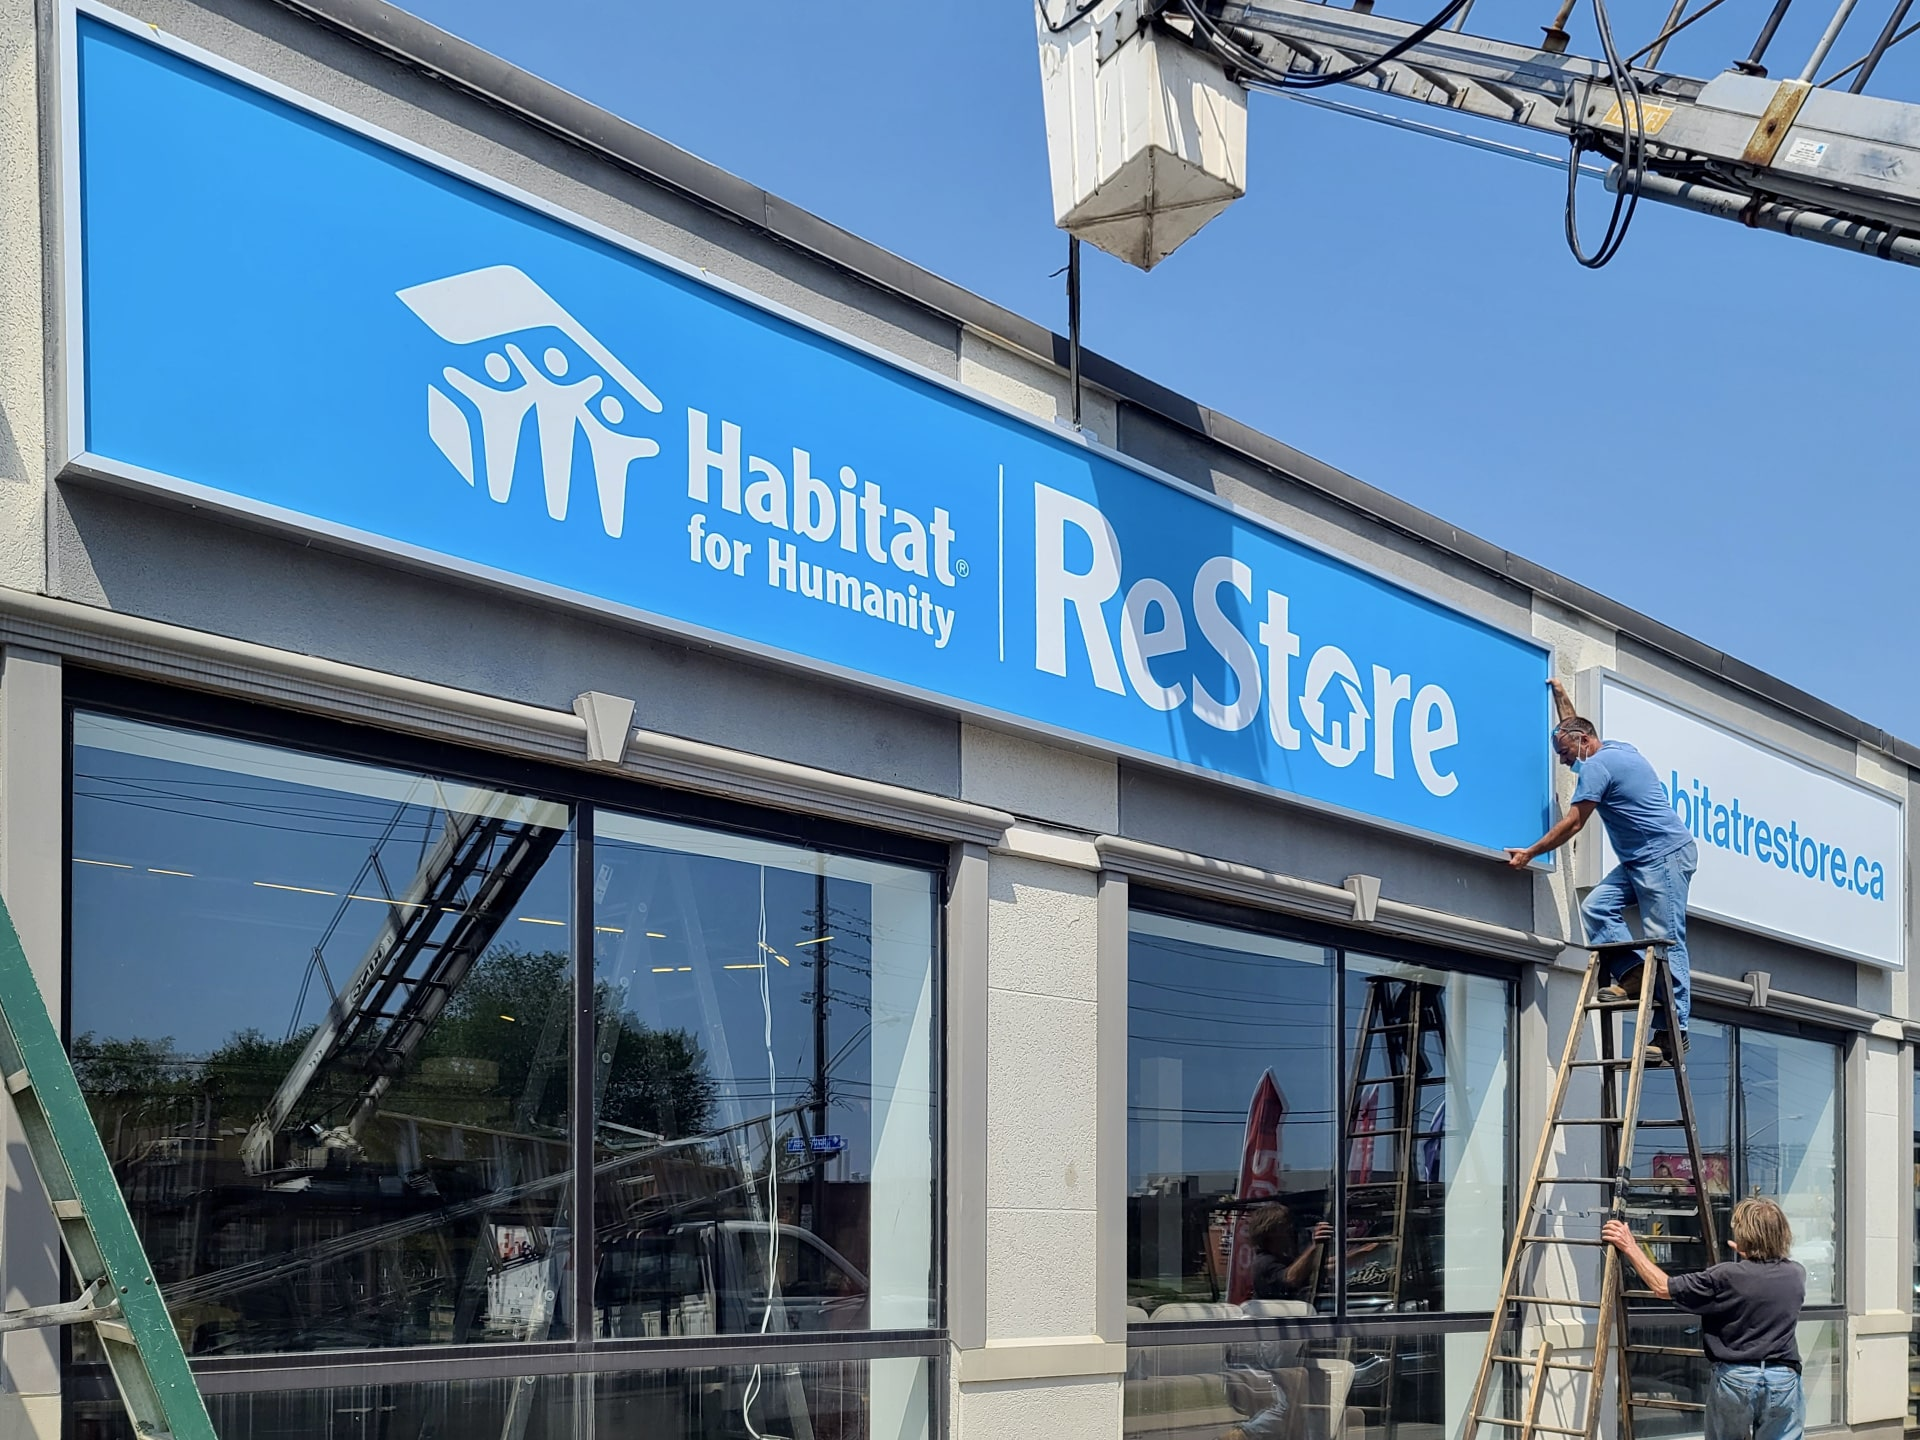 Habitat For Humanity Illuminated box signs by Sigarama Toronto Bay Street